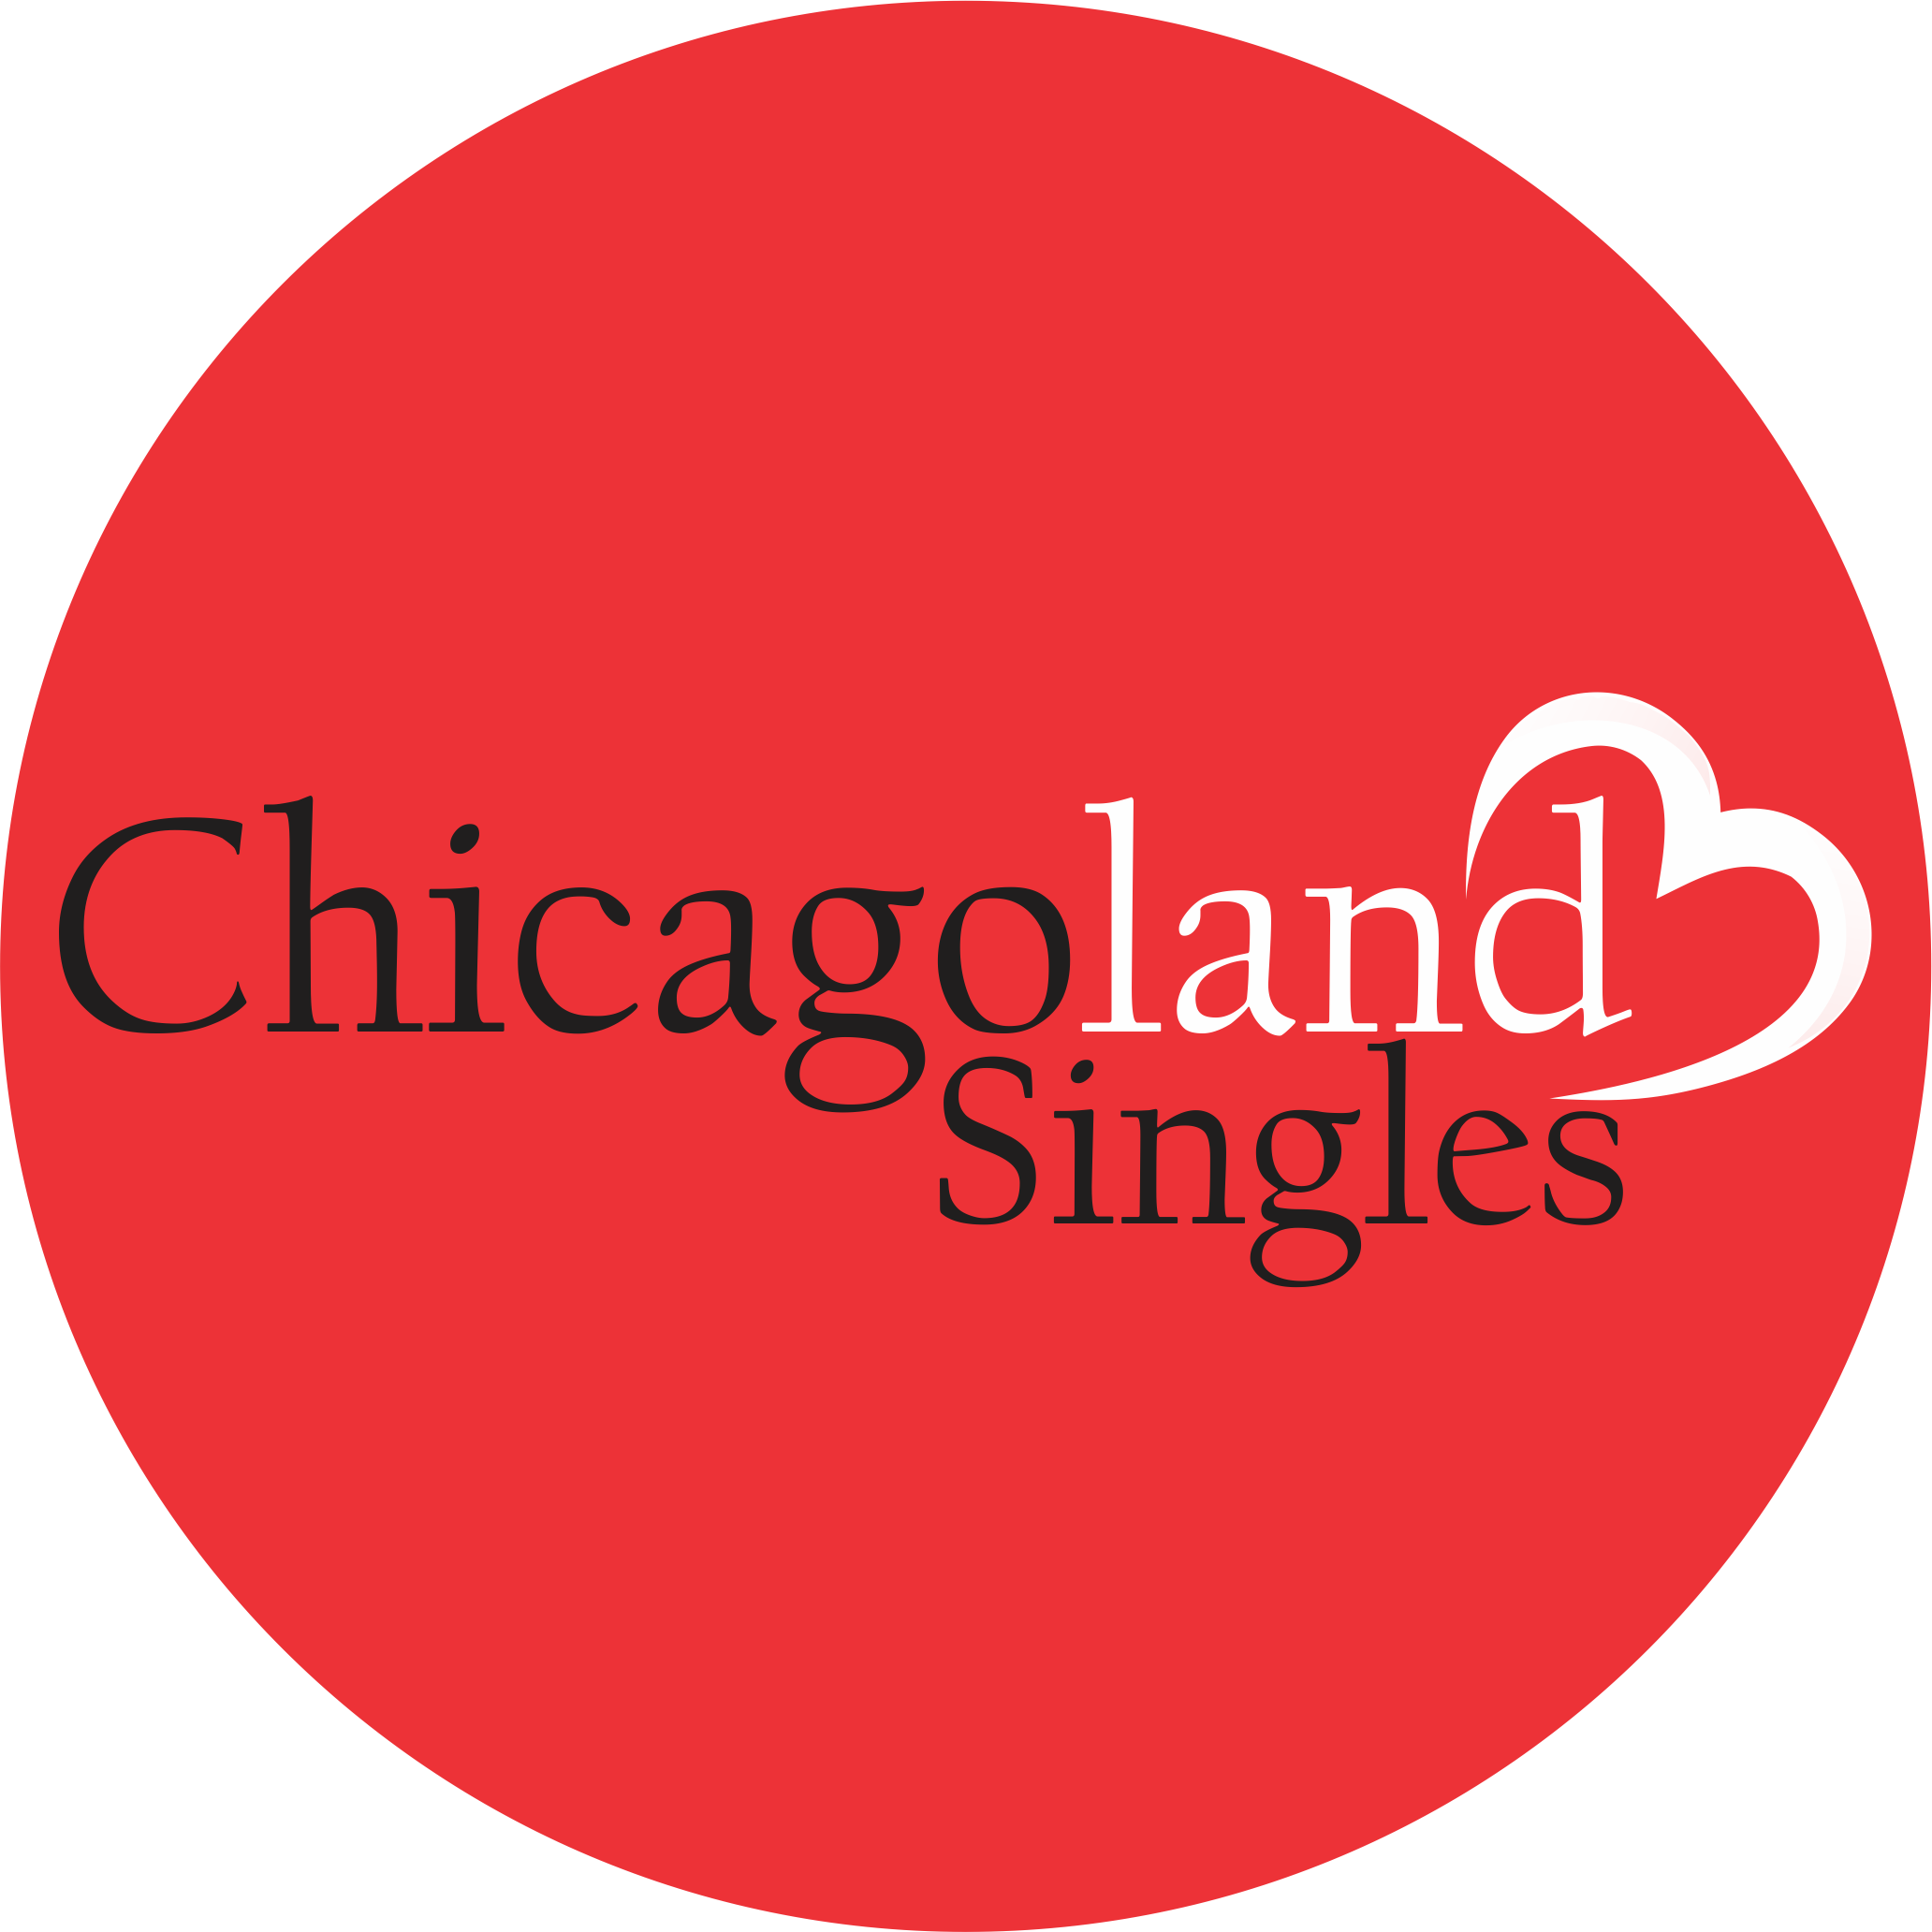 Meeting Singles In Chicago